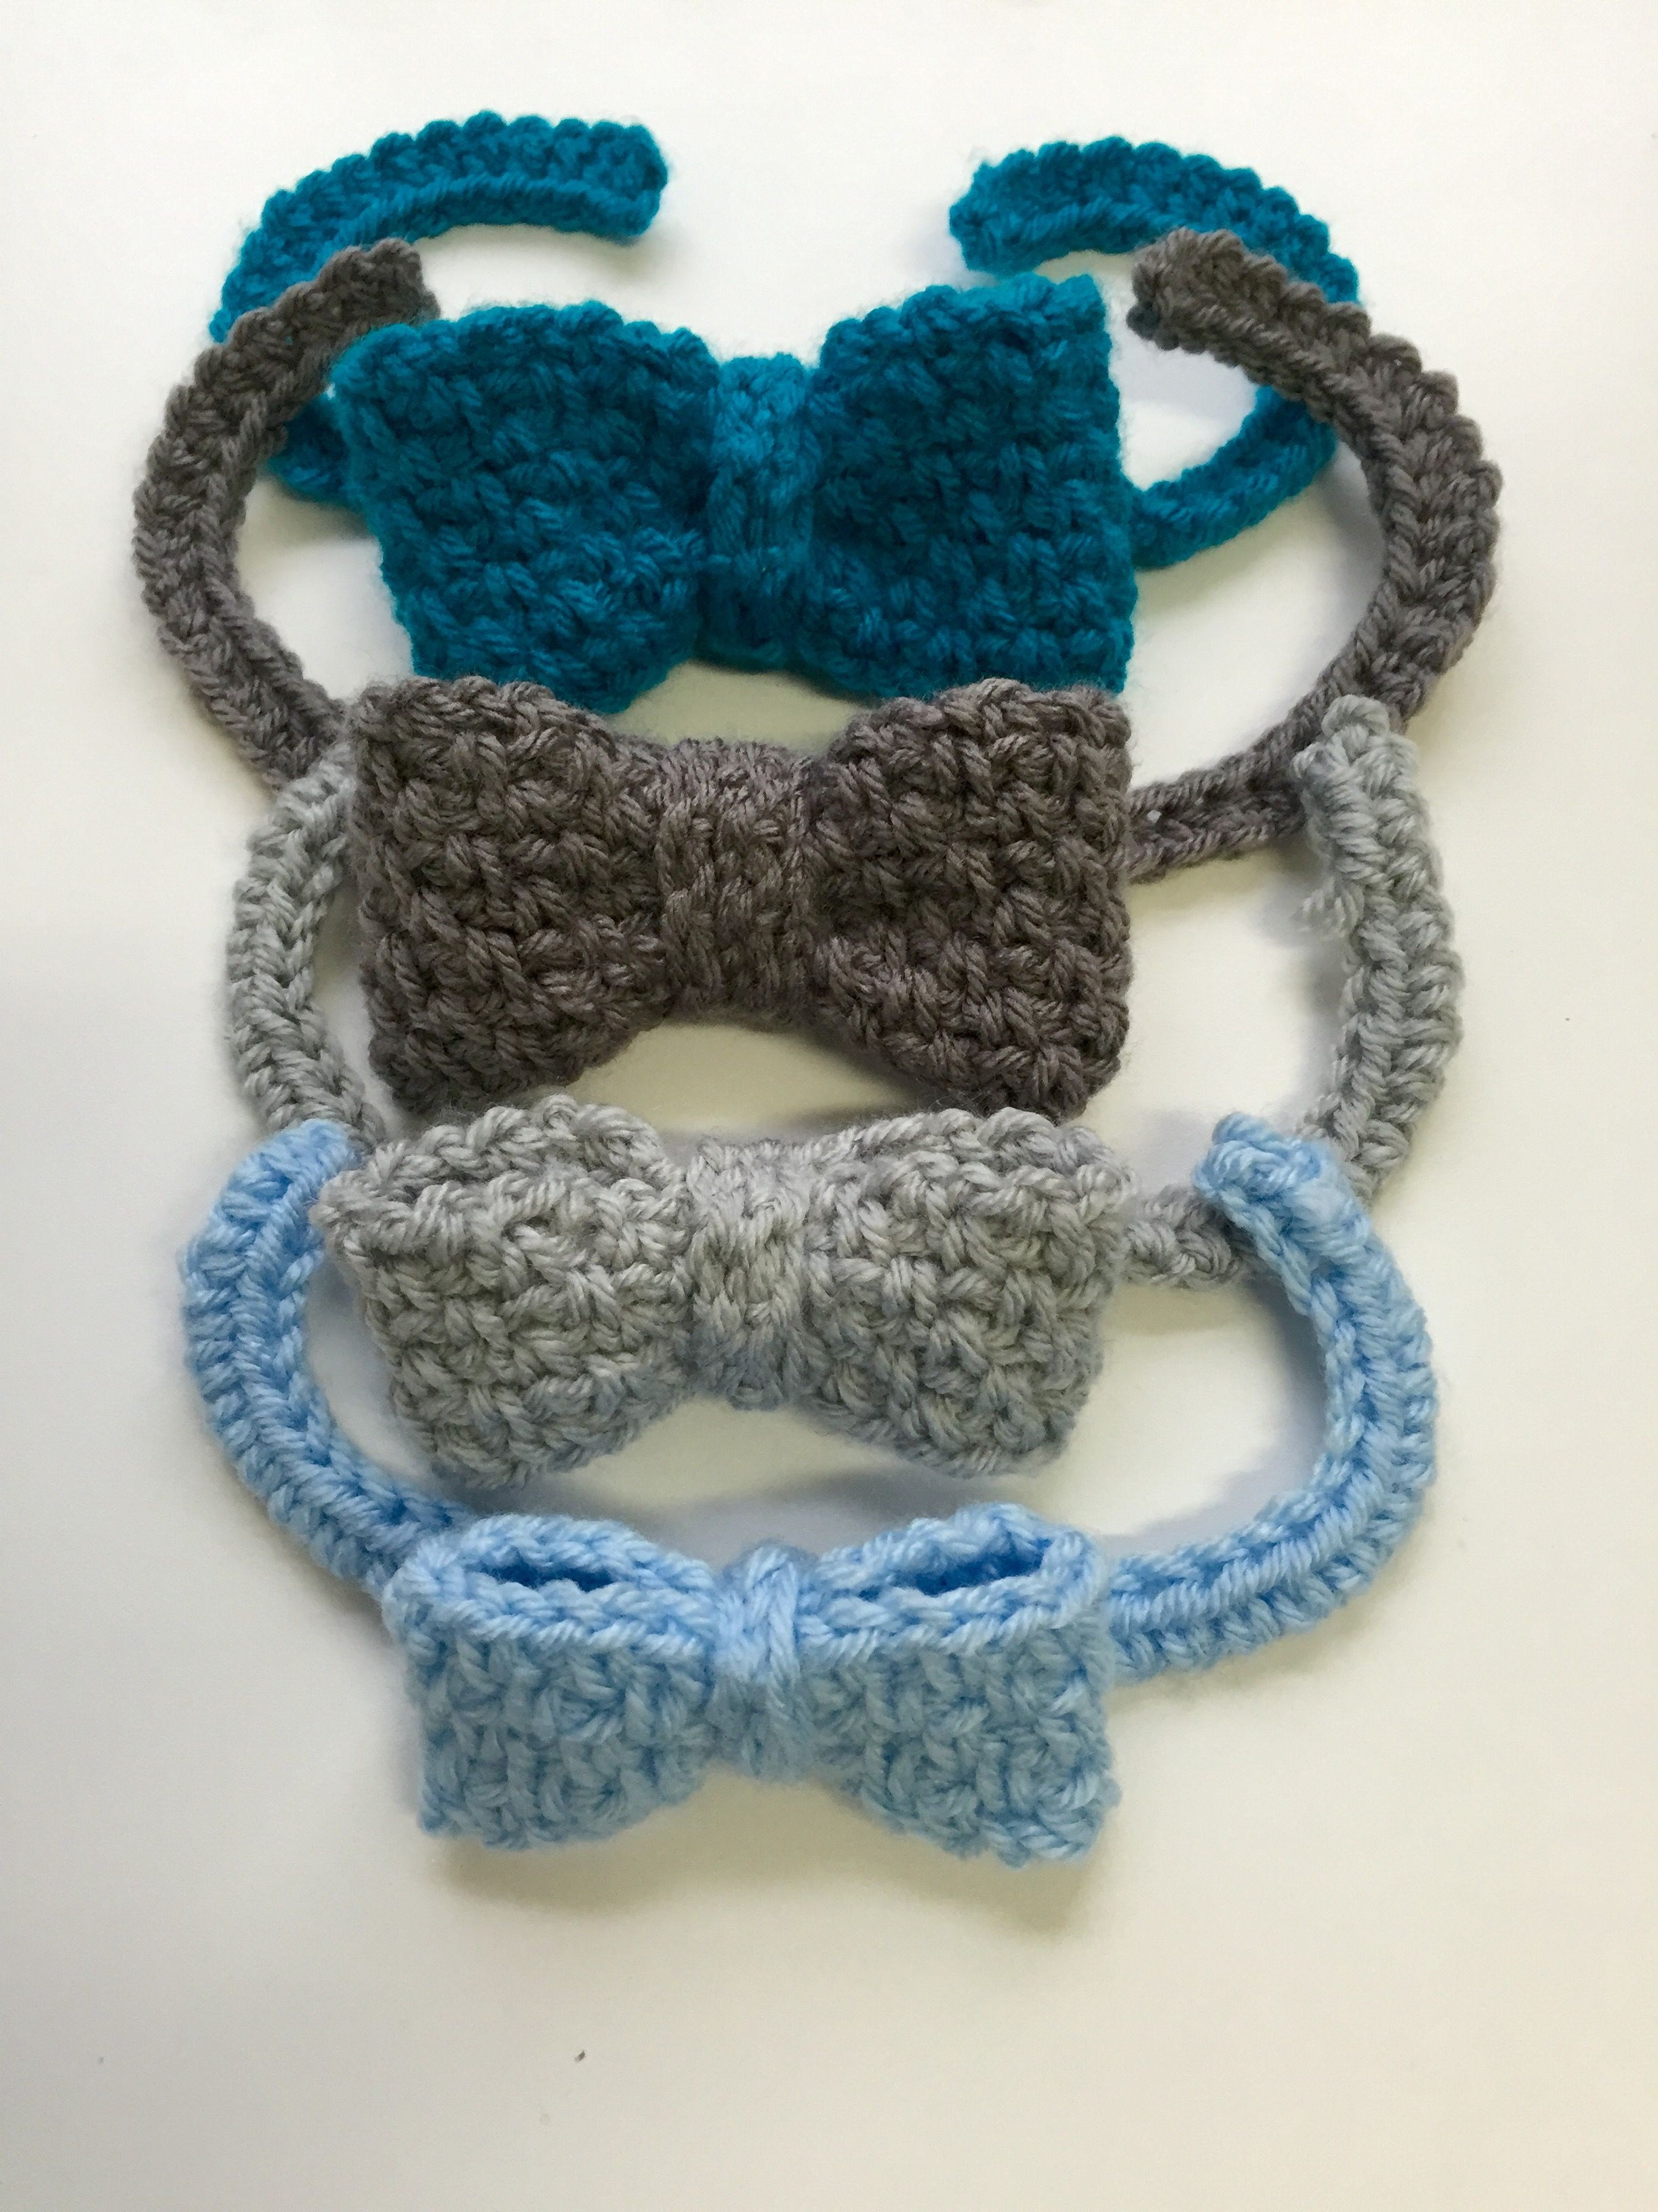 Crochet Pattern - Woven Dressy Bow Tie for Babies, Boys, and Men ...